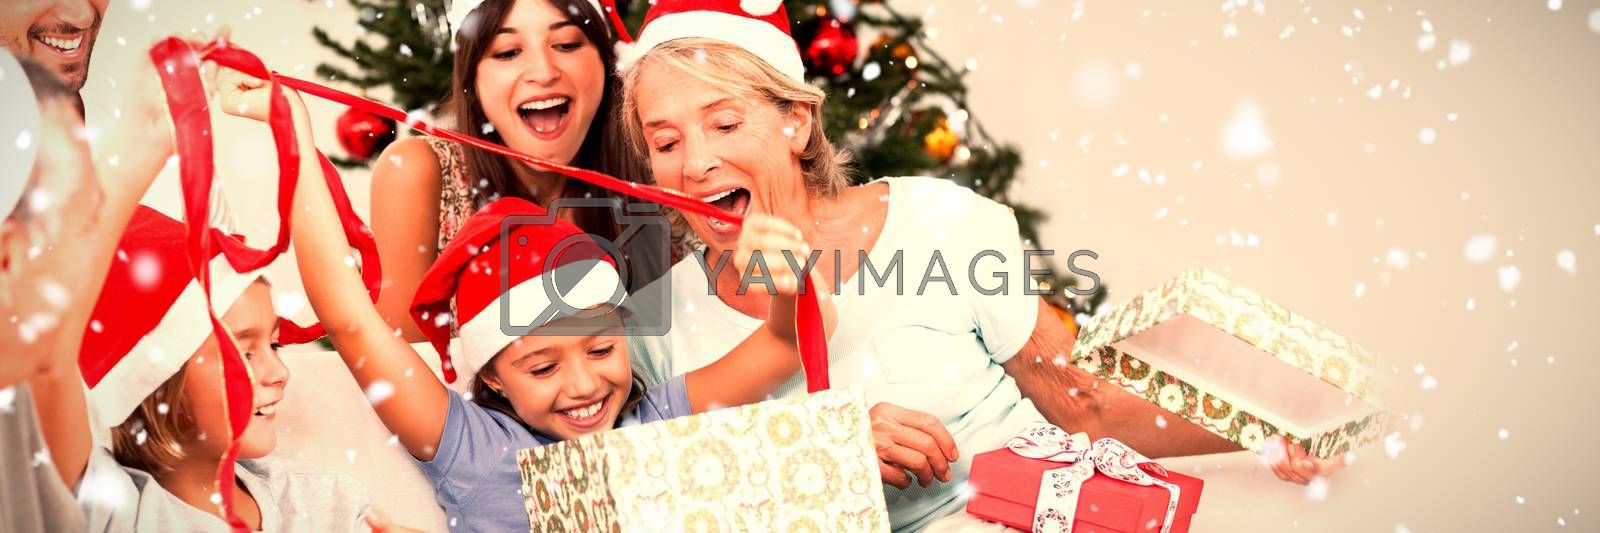 Happy family at christmas opening gifts together against snow falling